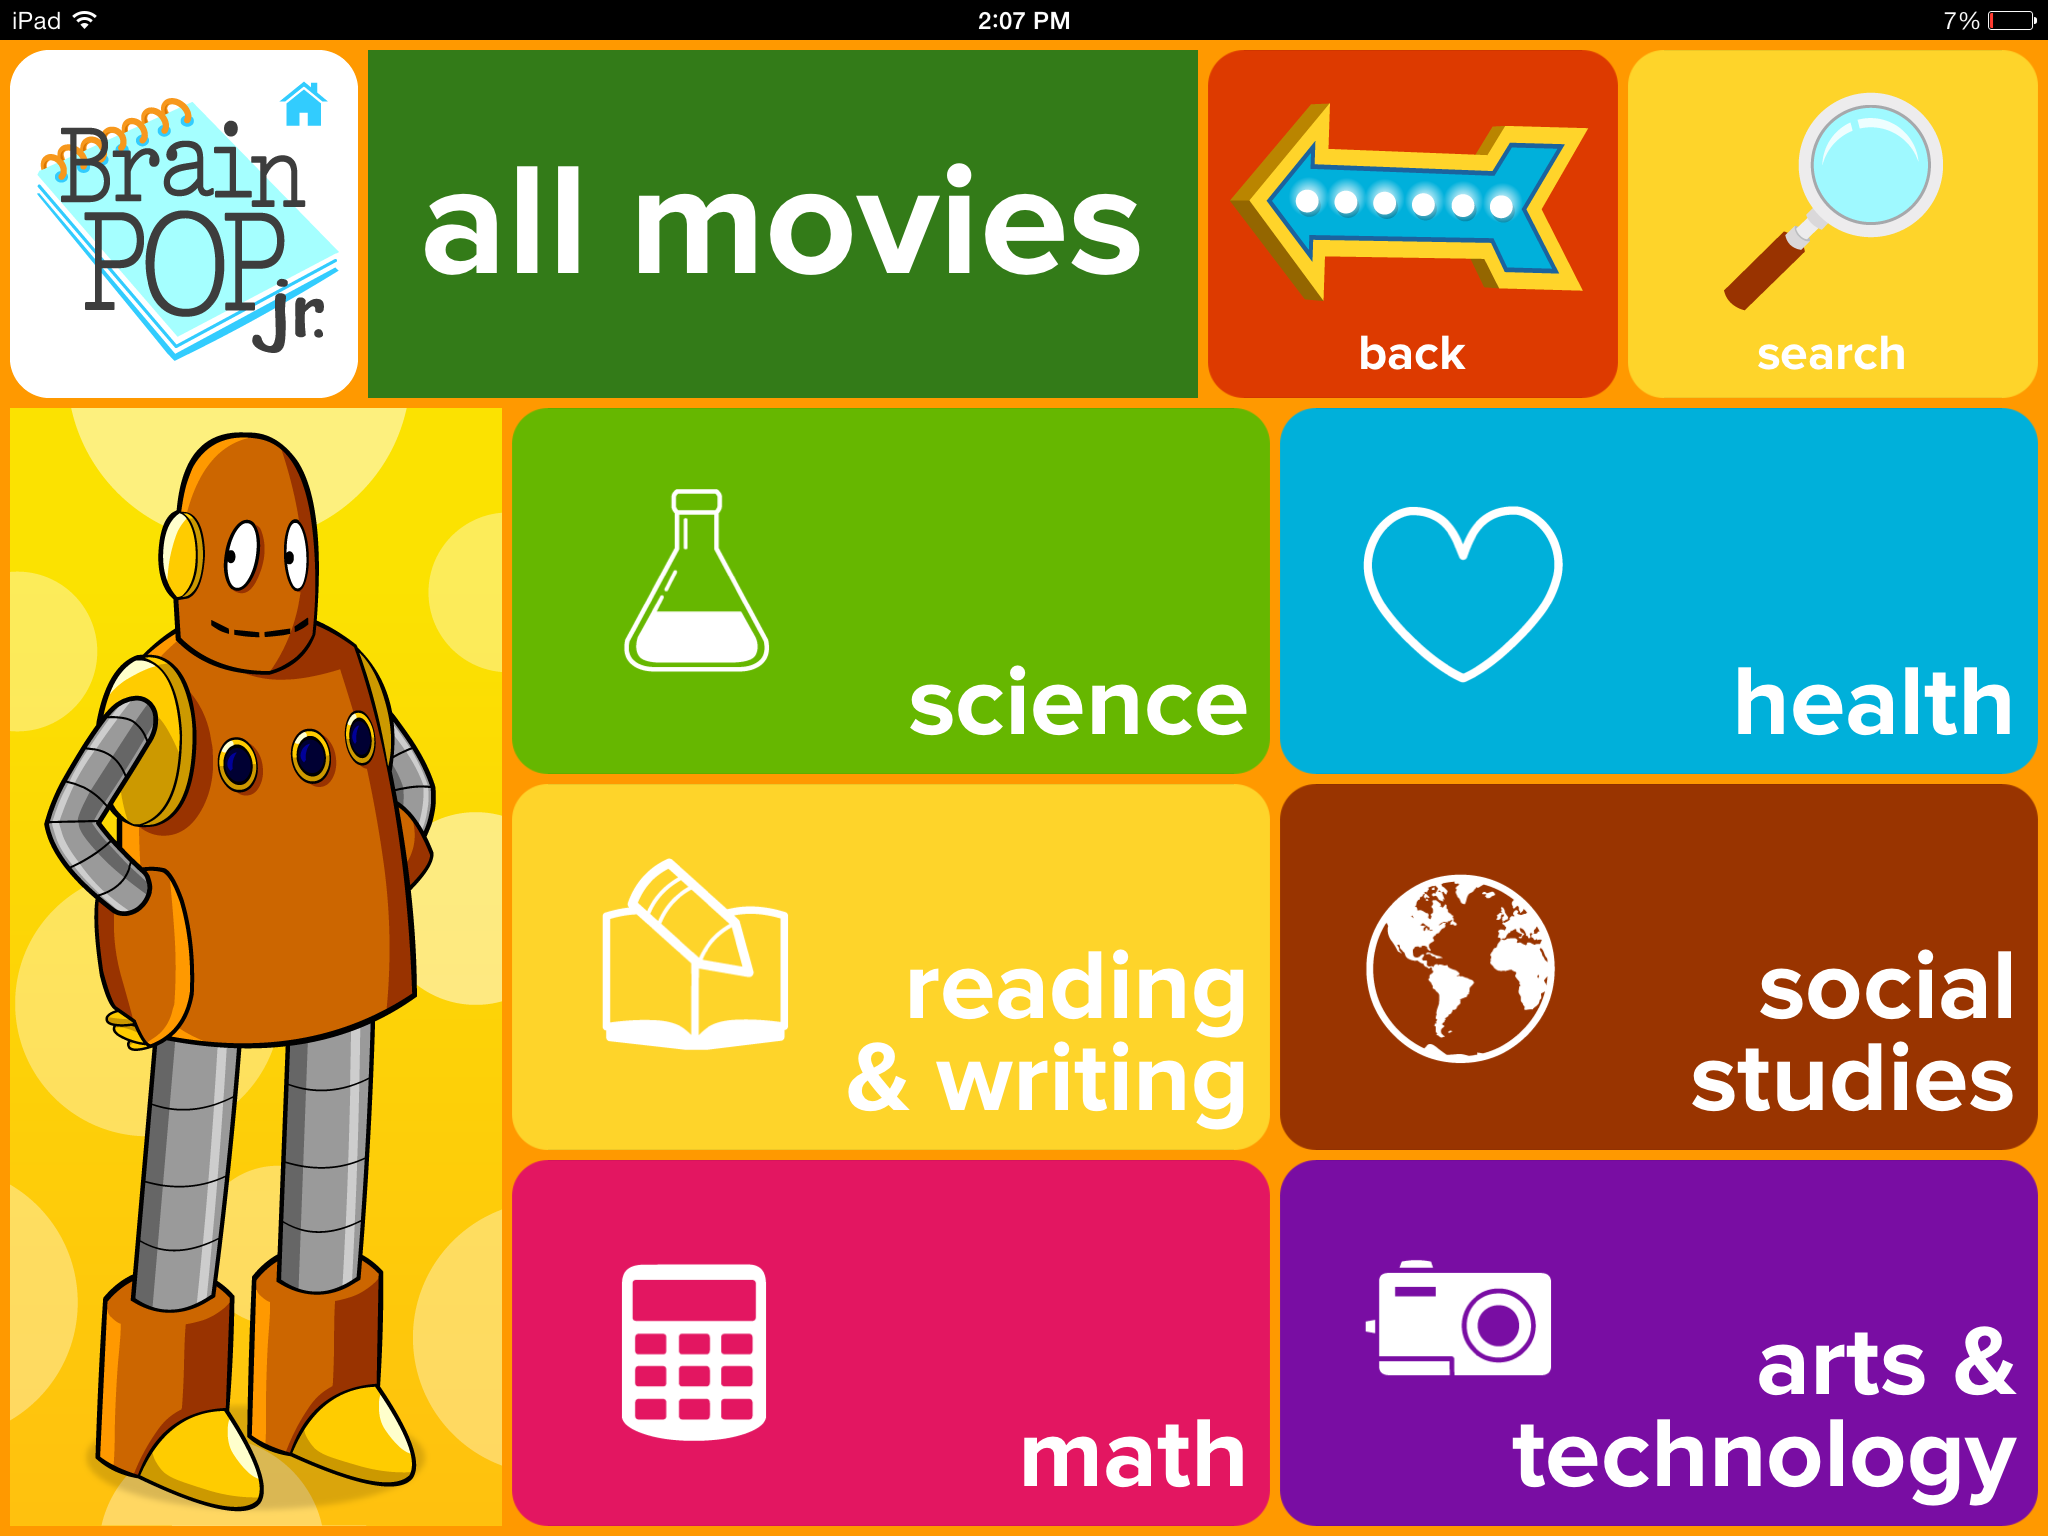 Brainpop Jr Movie Of The Week Review For Teachers Common Sense